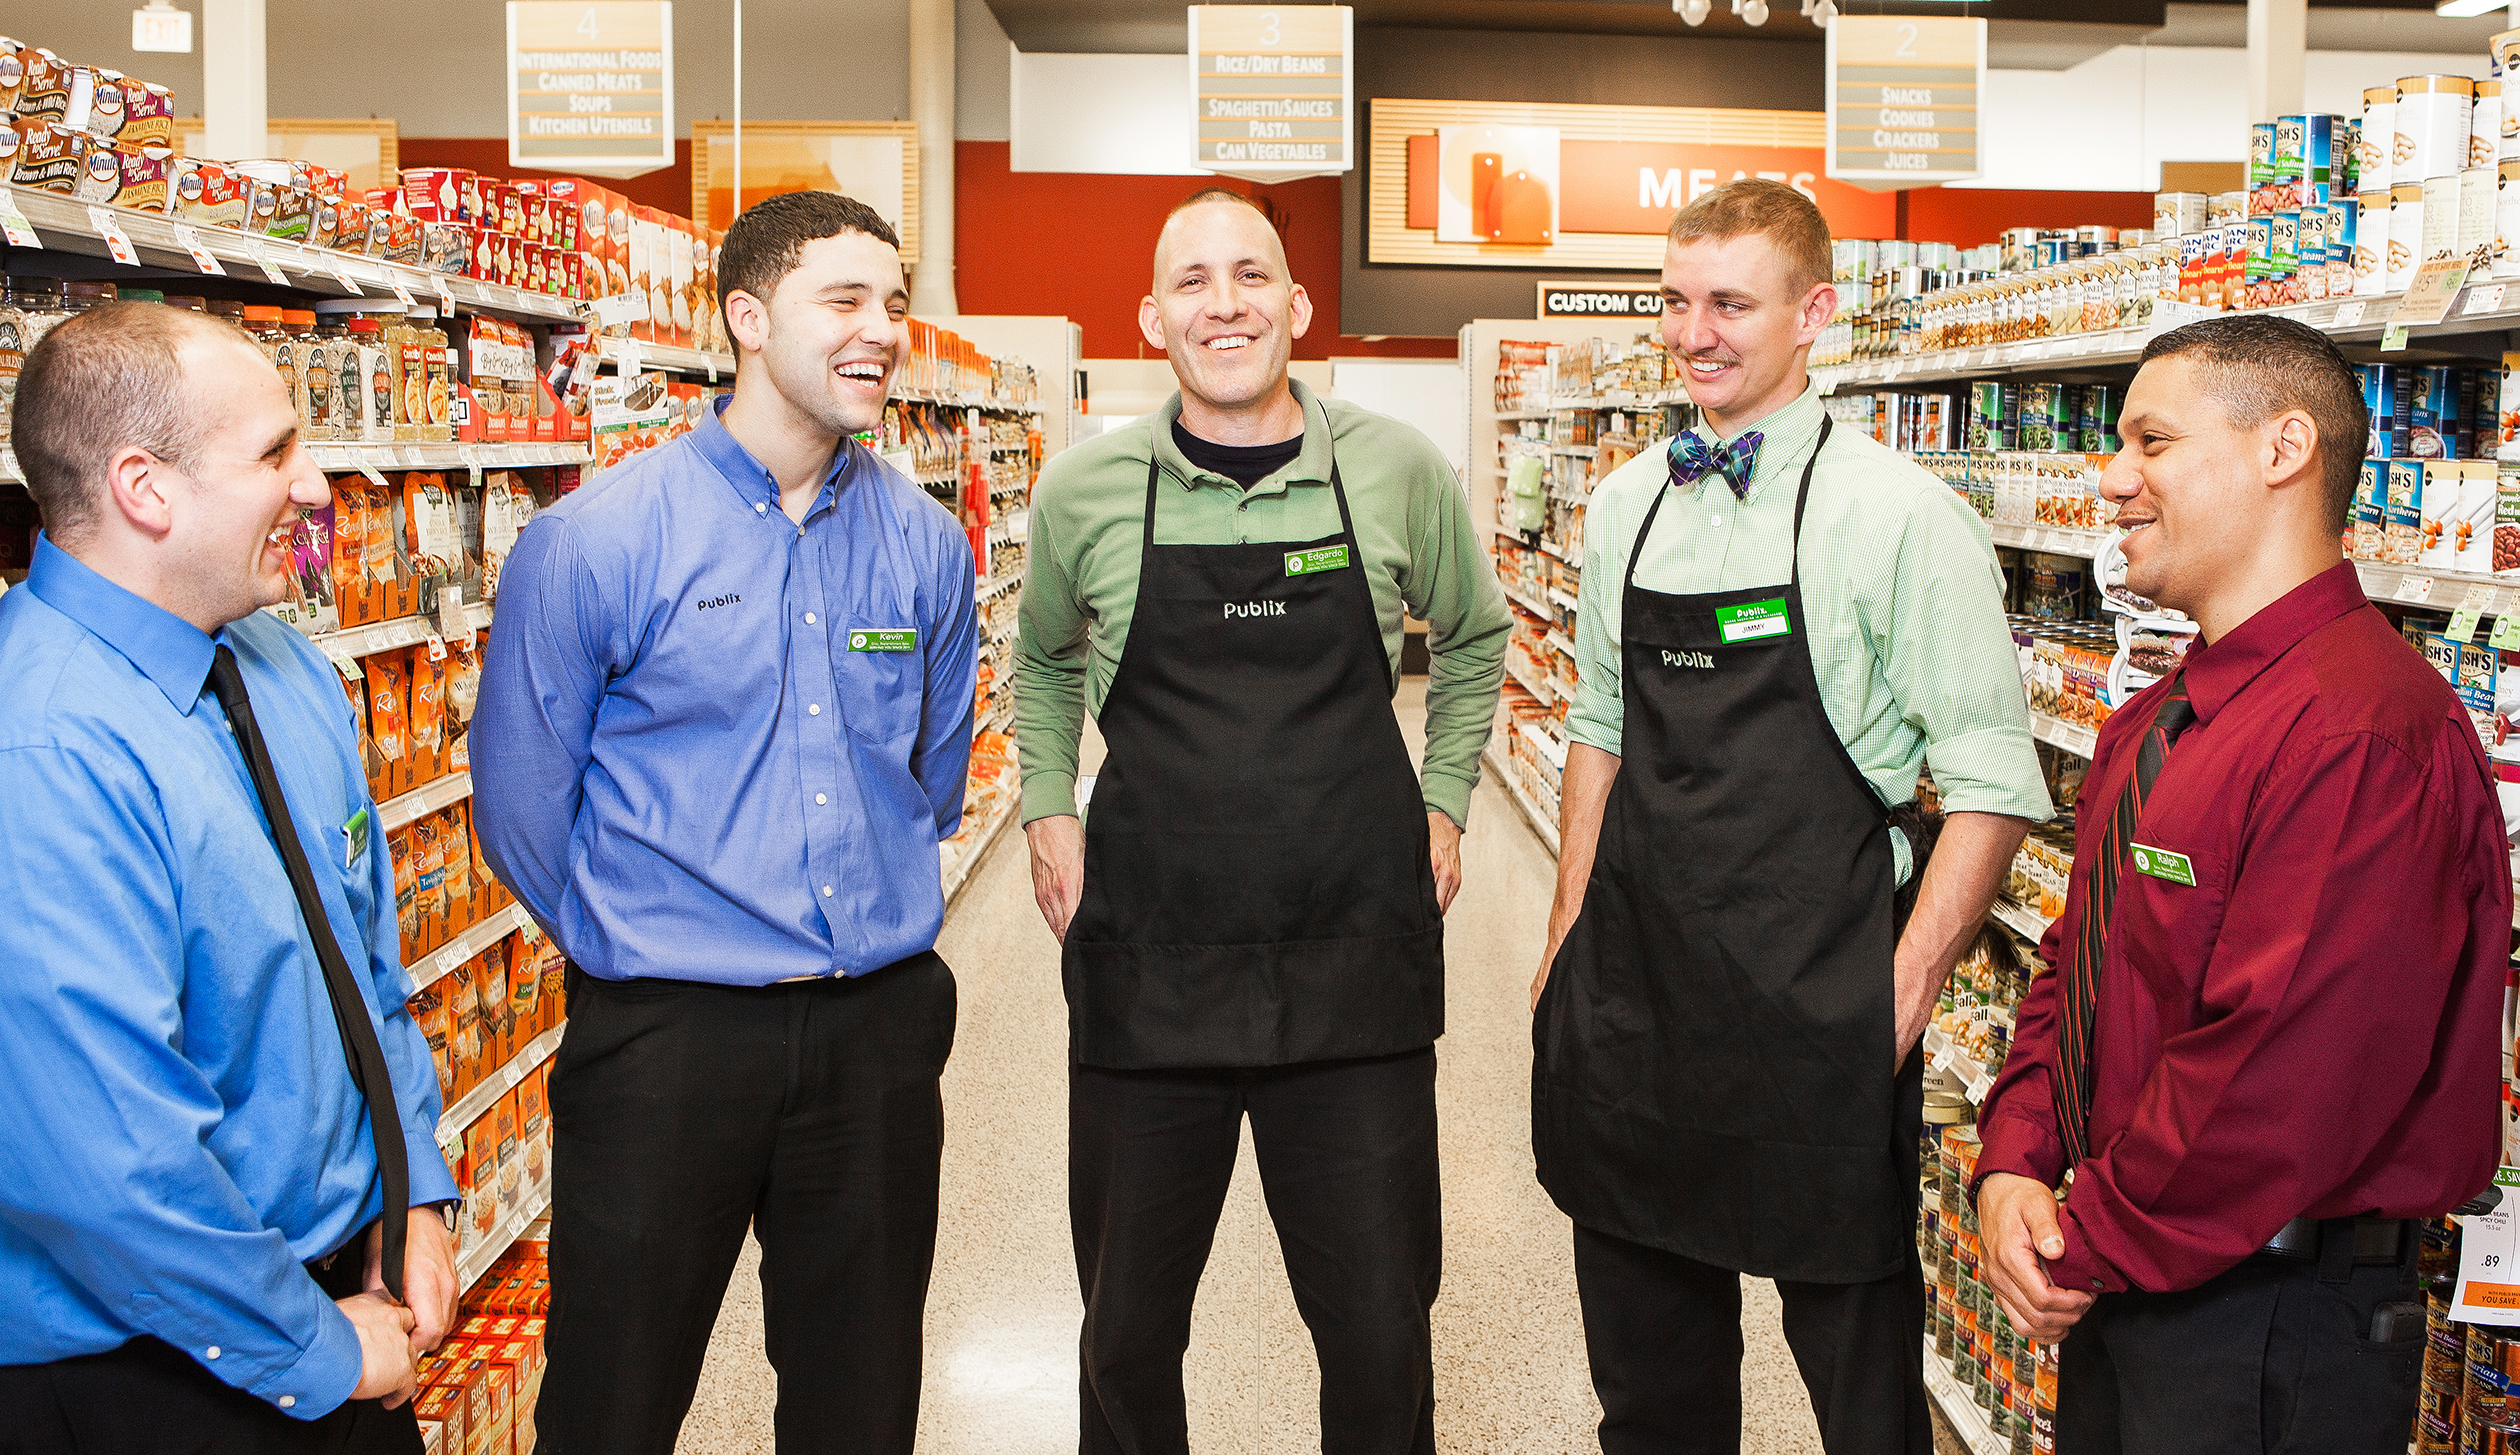 Associates at Publix Super Markets gather for a quick huddle during the workday.